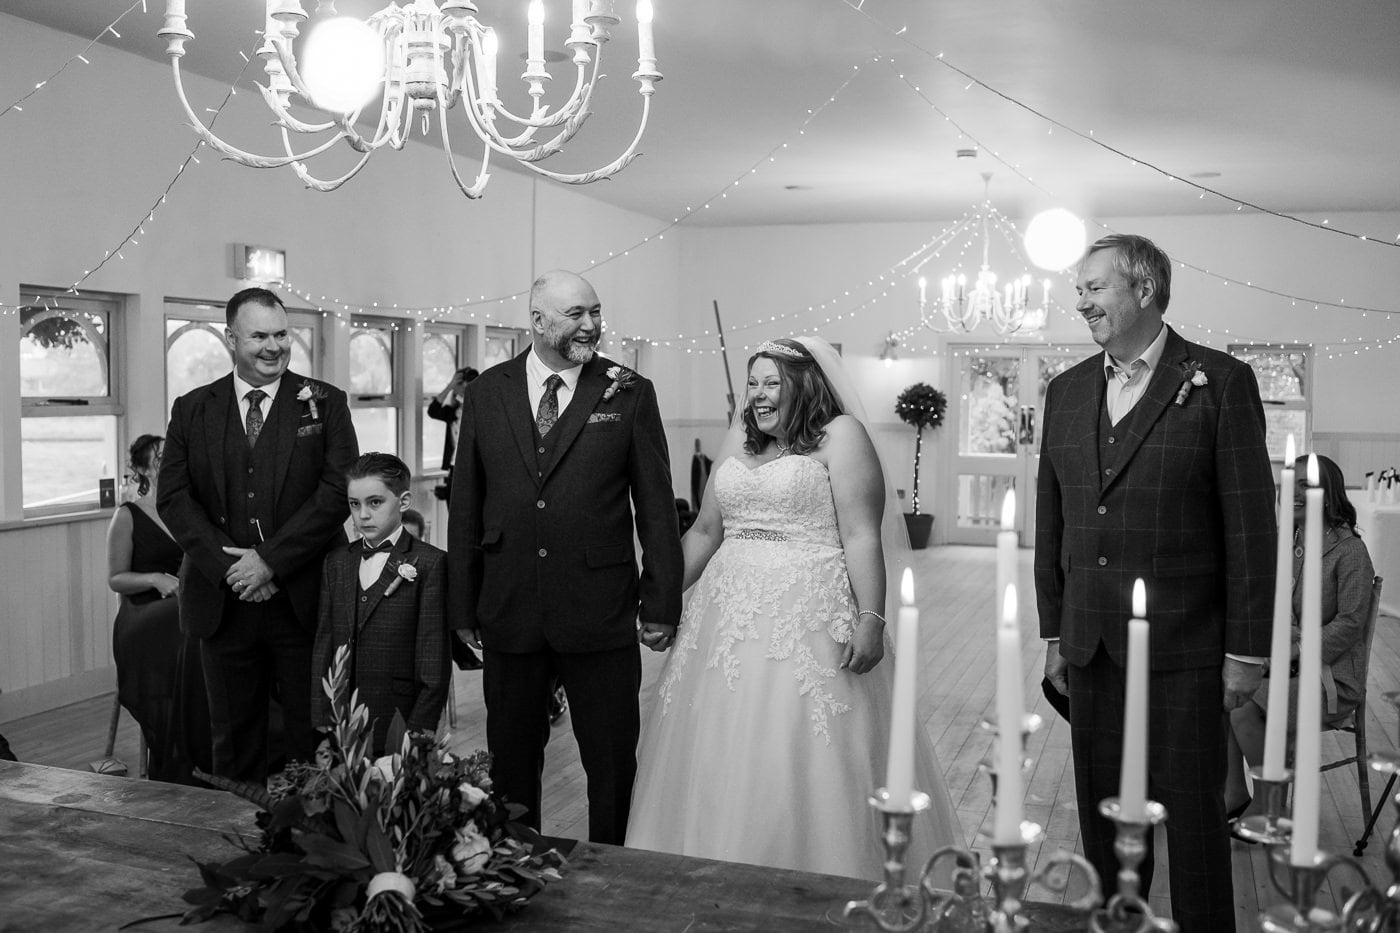 Small 15 person wedding at Kings Arms Hotel